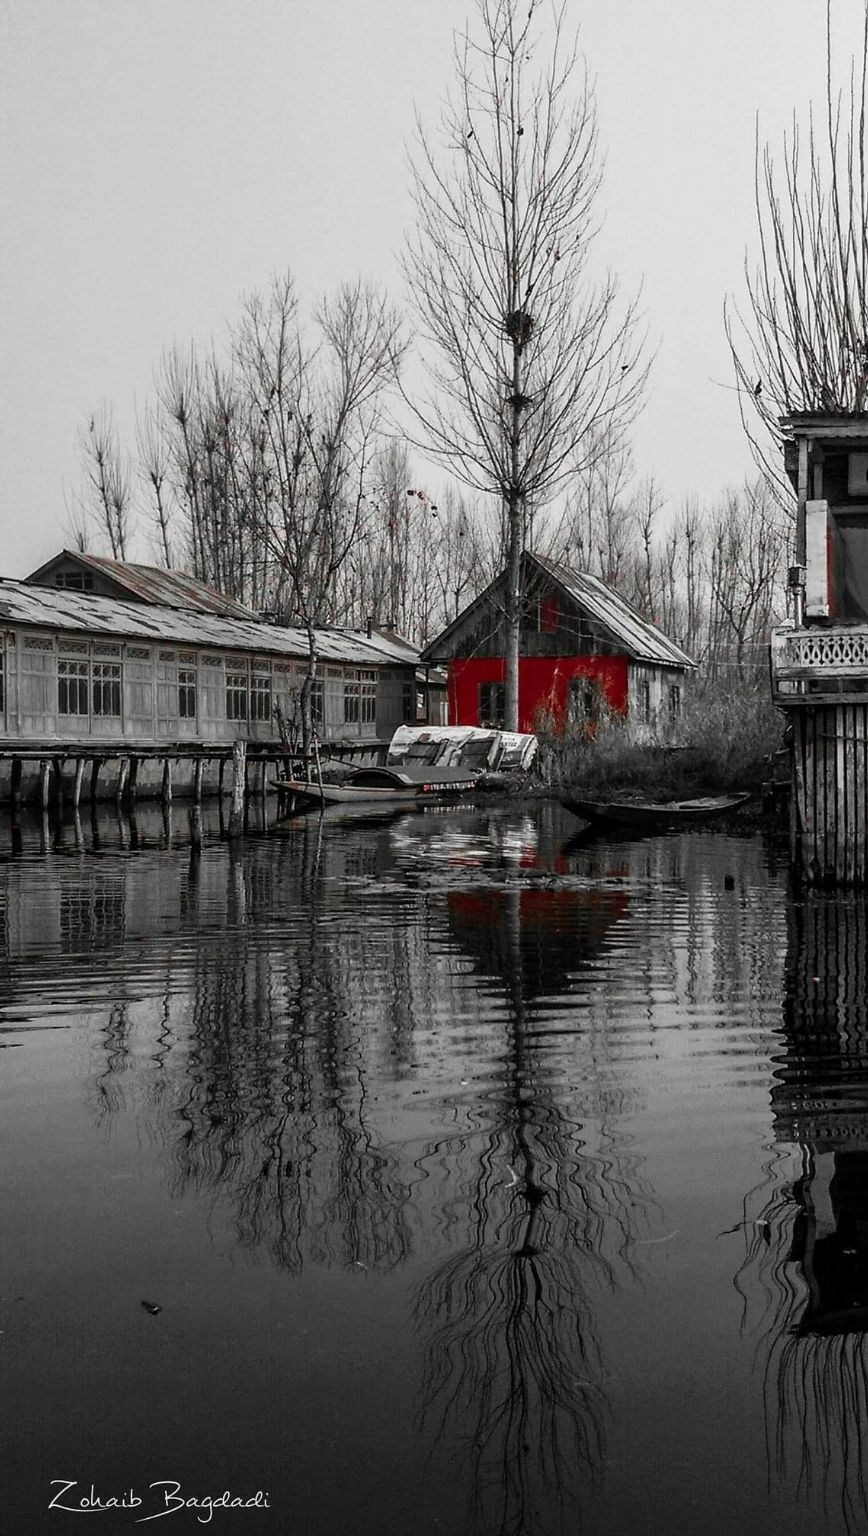 Photo of Dal Lake By Zohaib Bagdadi